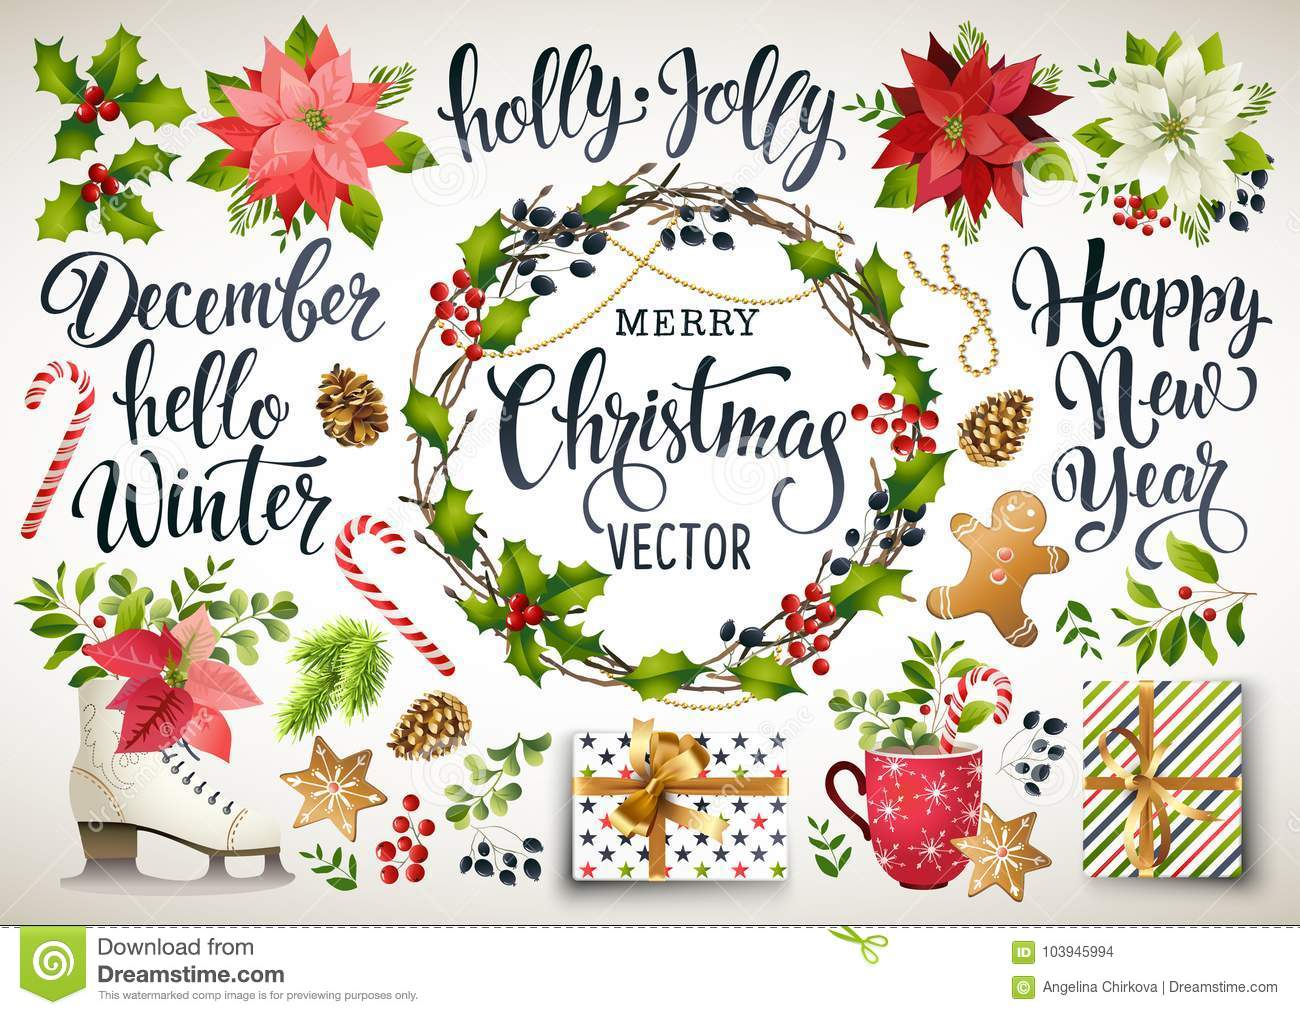 Christmas set design of poinsettia, fir branches, cones, holly and other plants. Cover, invitation, banner, greeting c